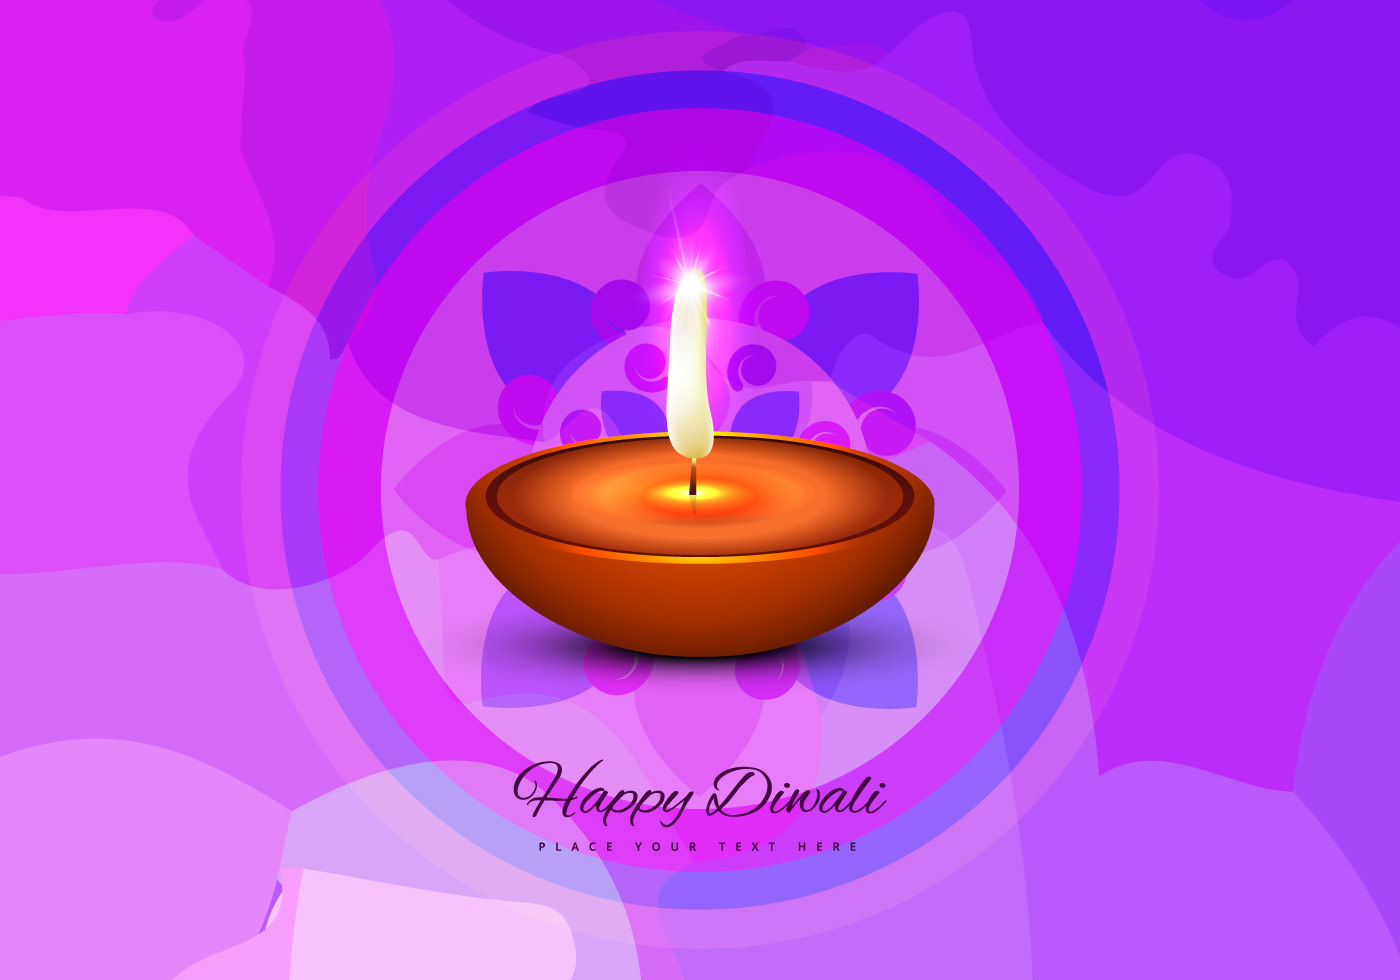 Happy Diwali Greeting Card Download Free Vector Art Stock